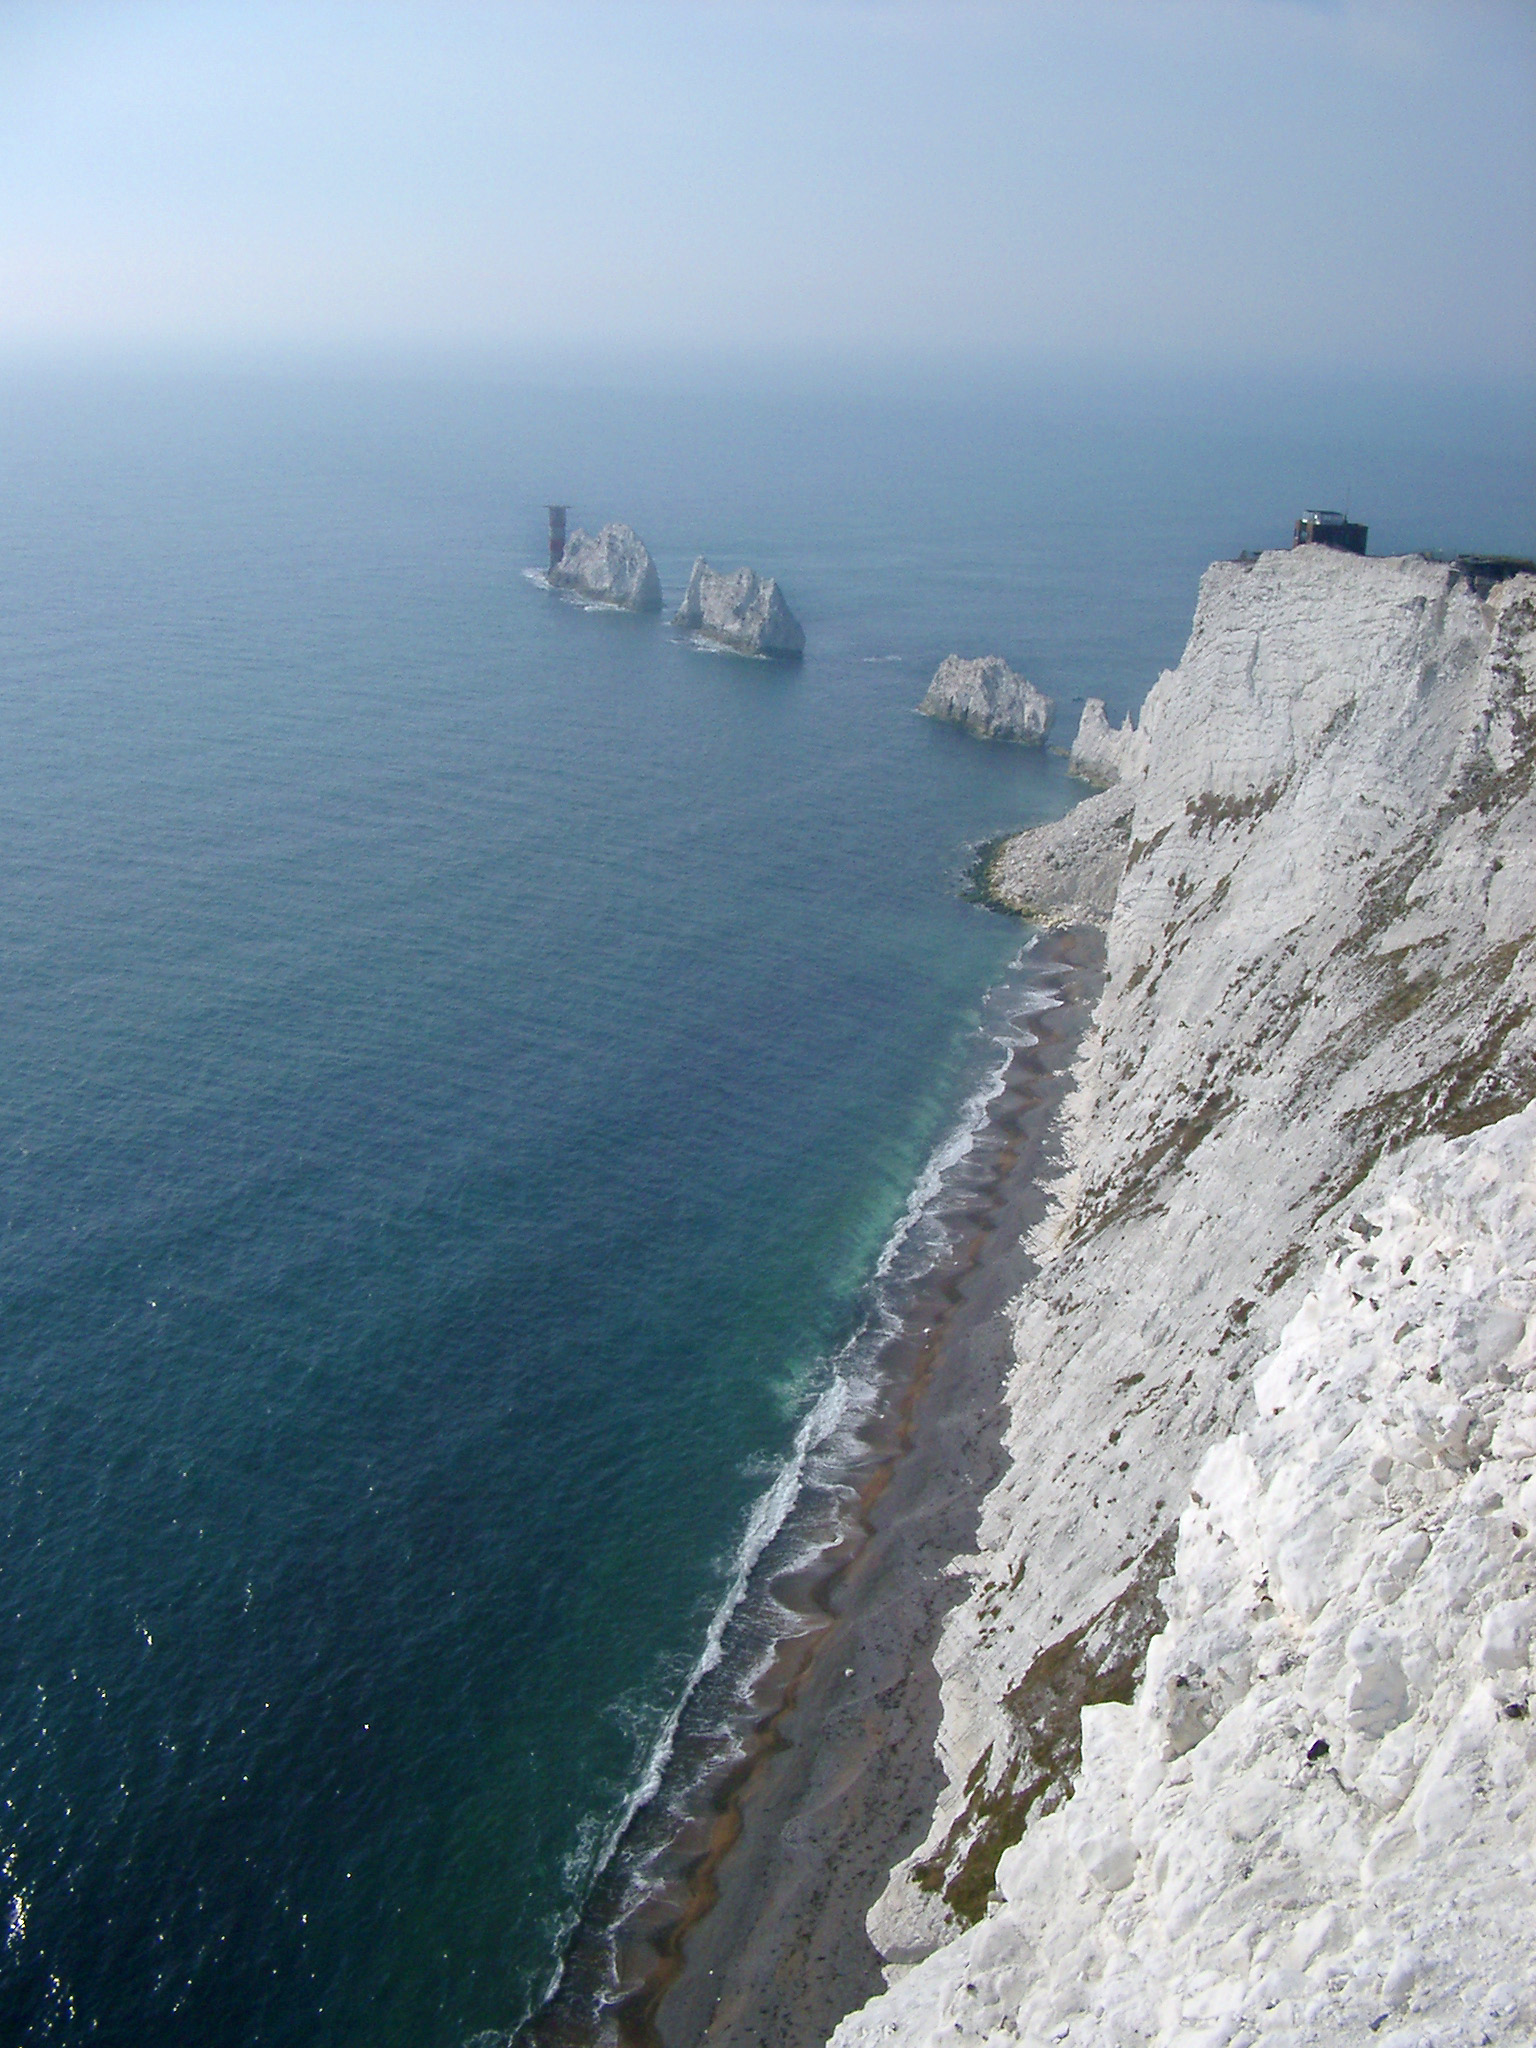 View along the coastline of the Isle of Wight showing the steep cliffs, beach and the Needles, a row of eroded chalk stacks rising from the ocean